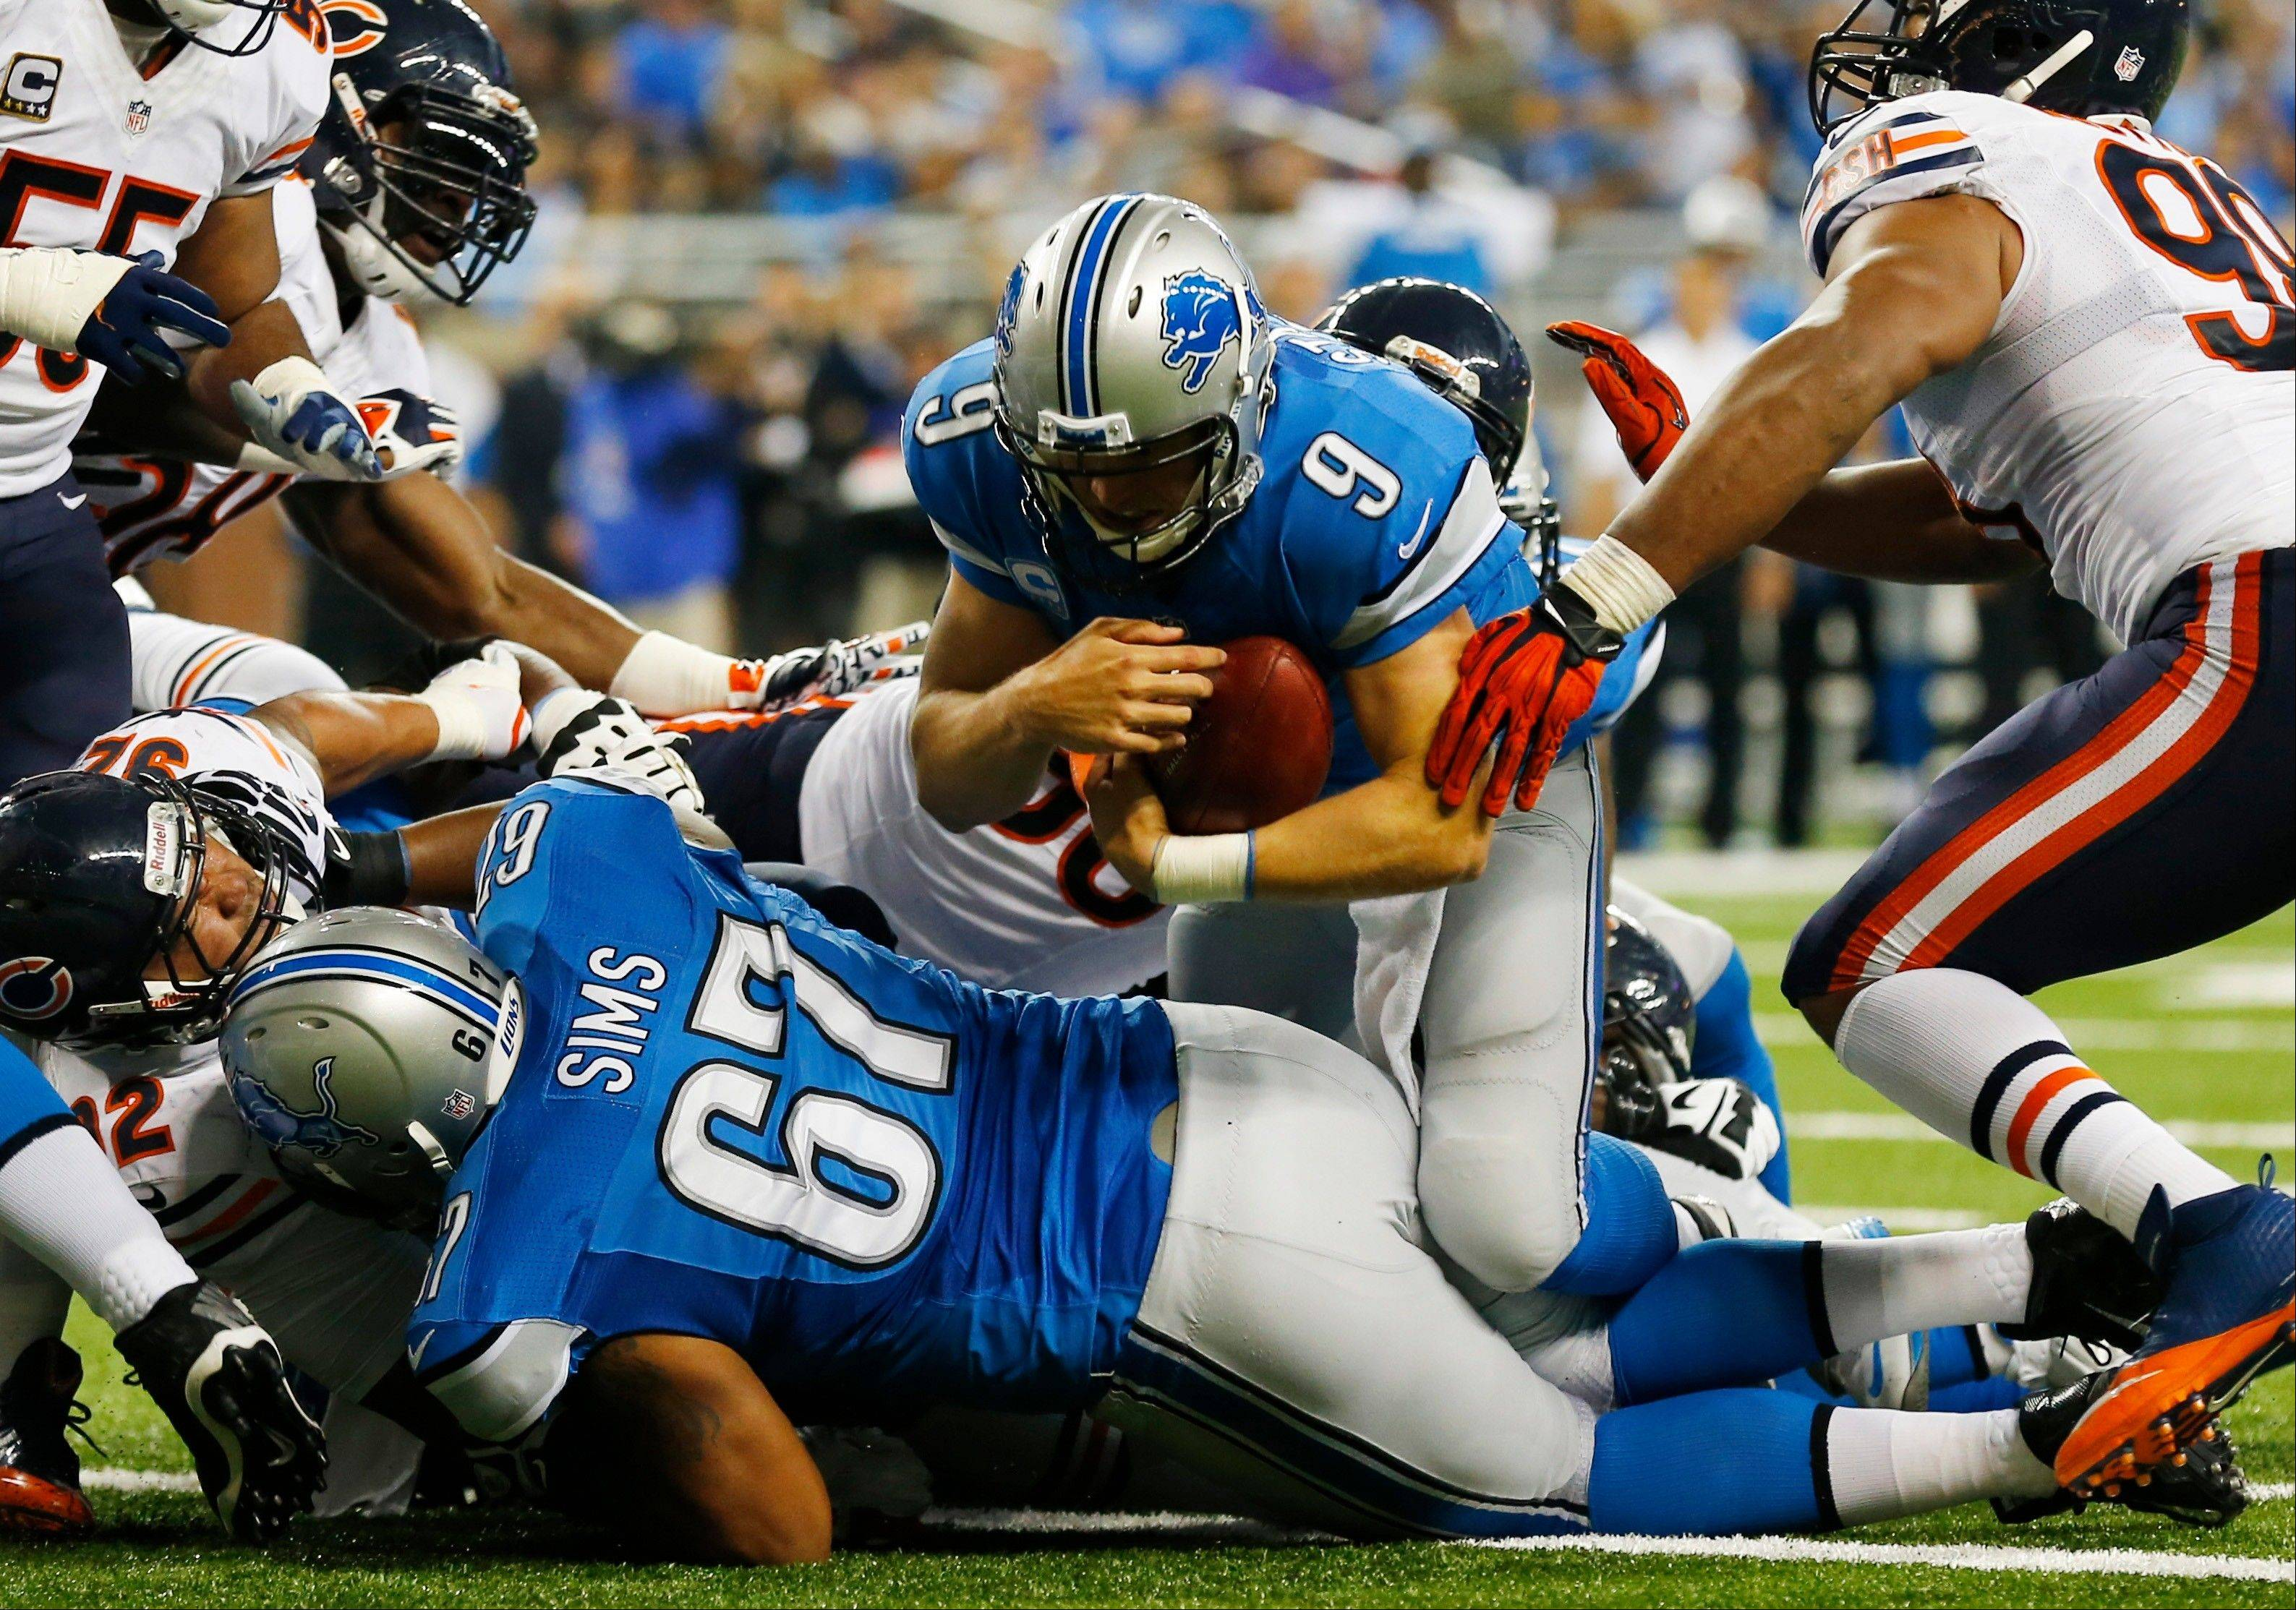 Detroit Lions quarterback Matthew Stafford (9) falls over the goal line for a touchdown after recovering his own fumble during the second quarter.